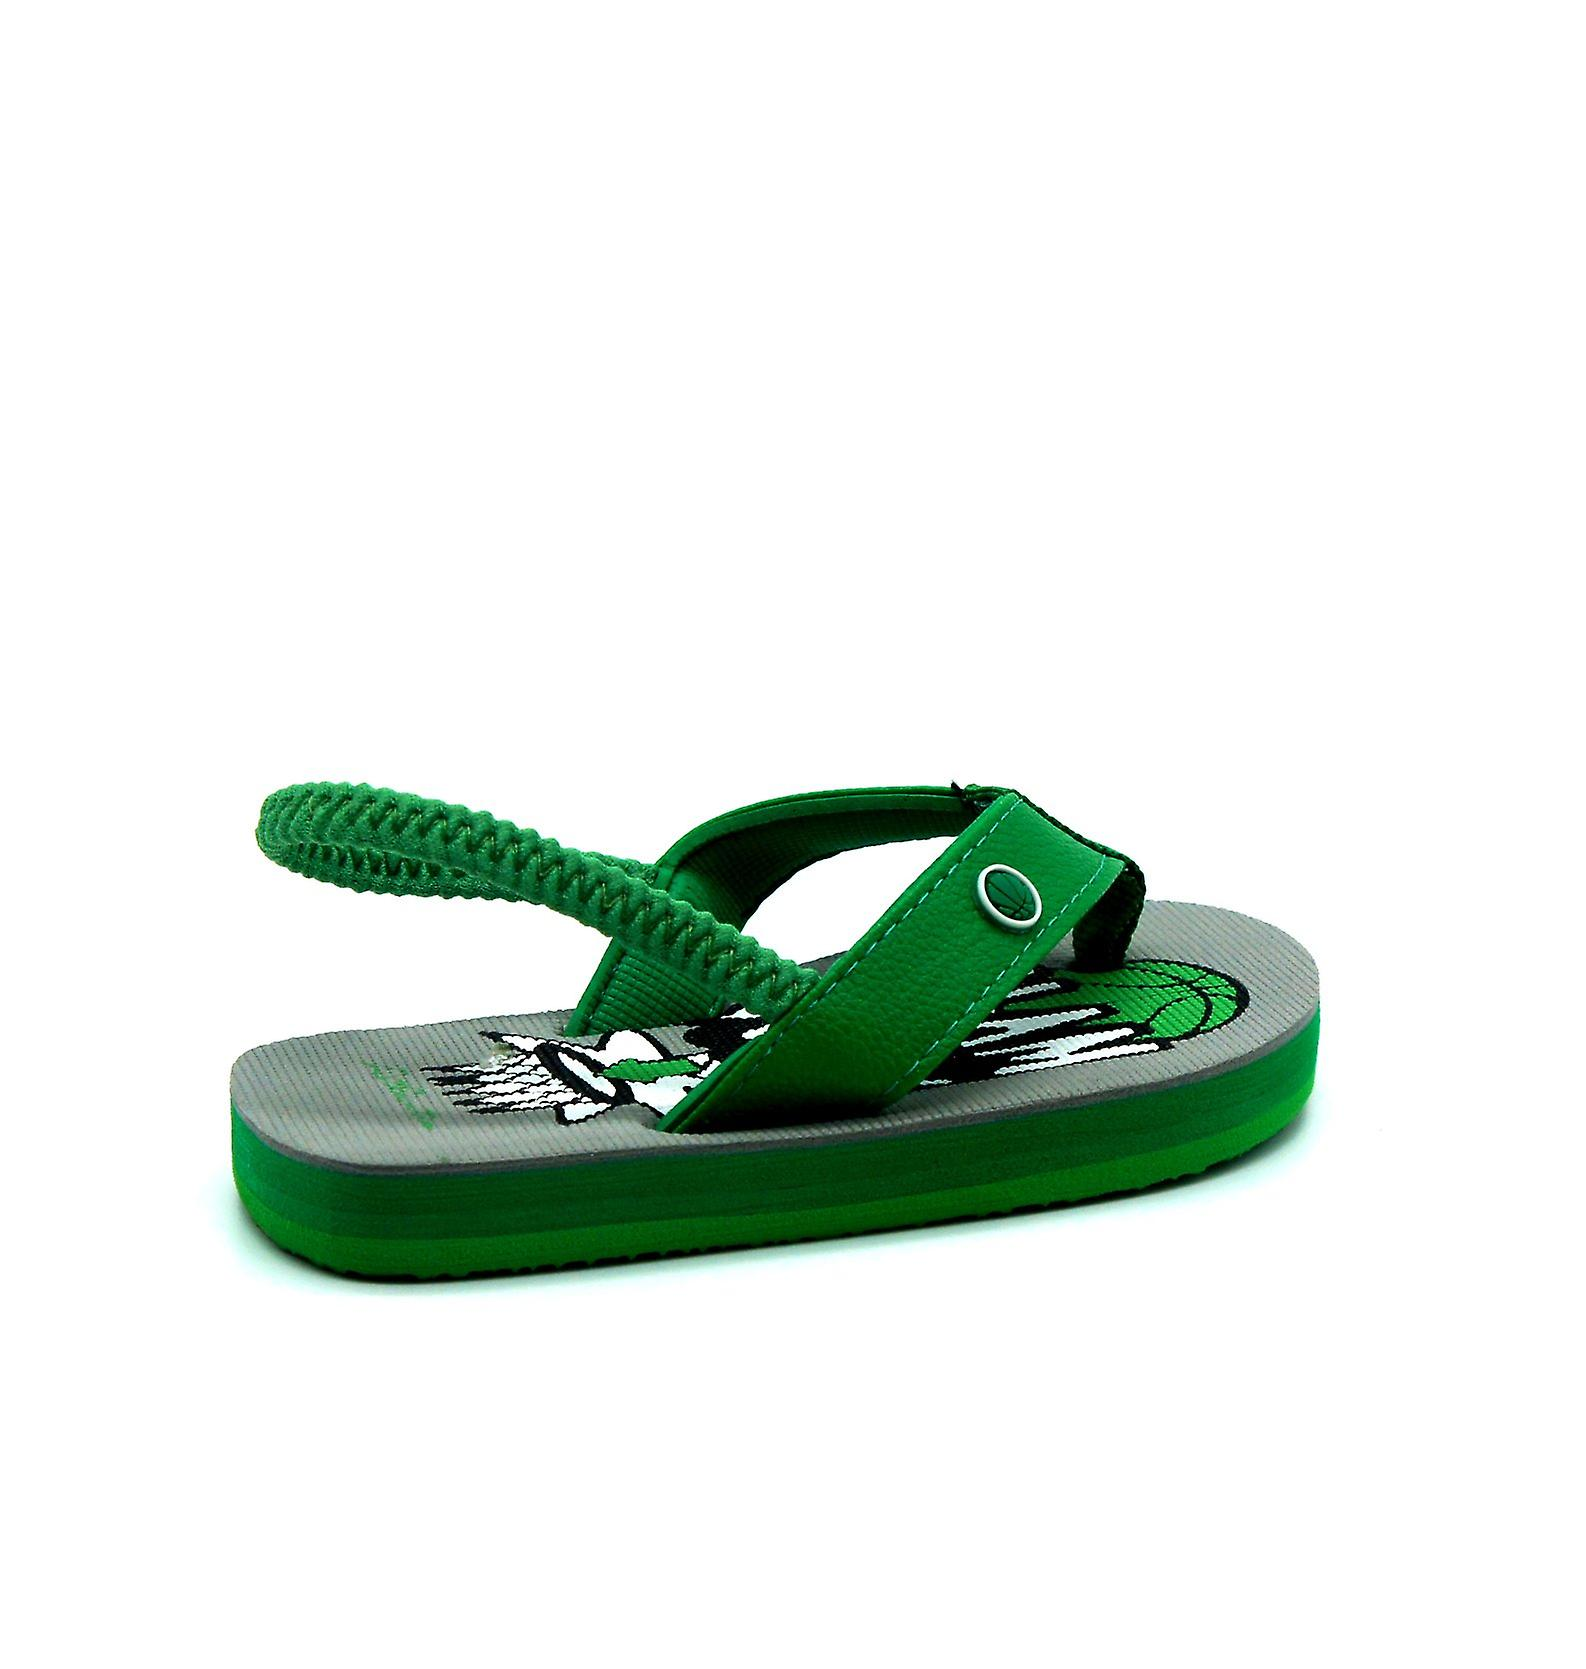 Atlantis Shoes Kids Supportive Cushioned Comfortable Sandals Flip Flops Slamdunk Green